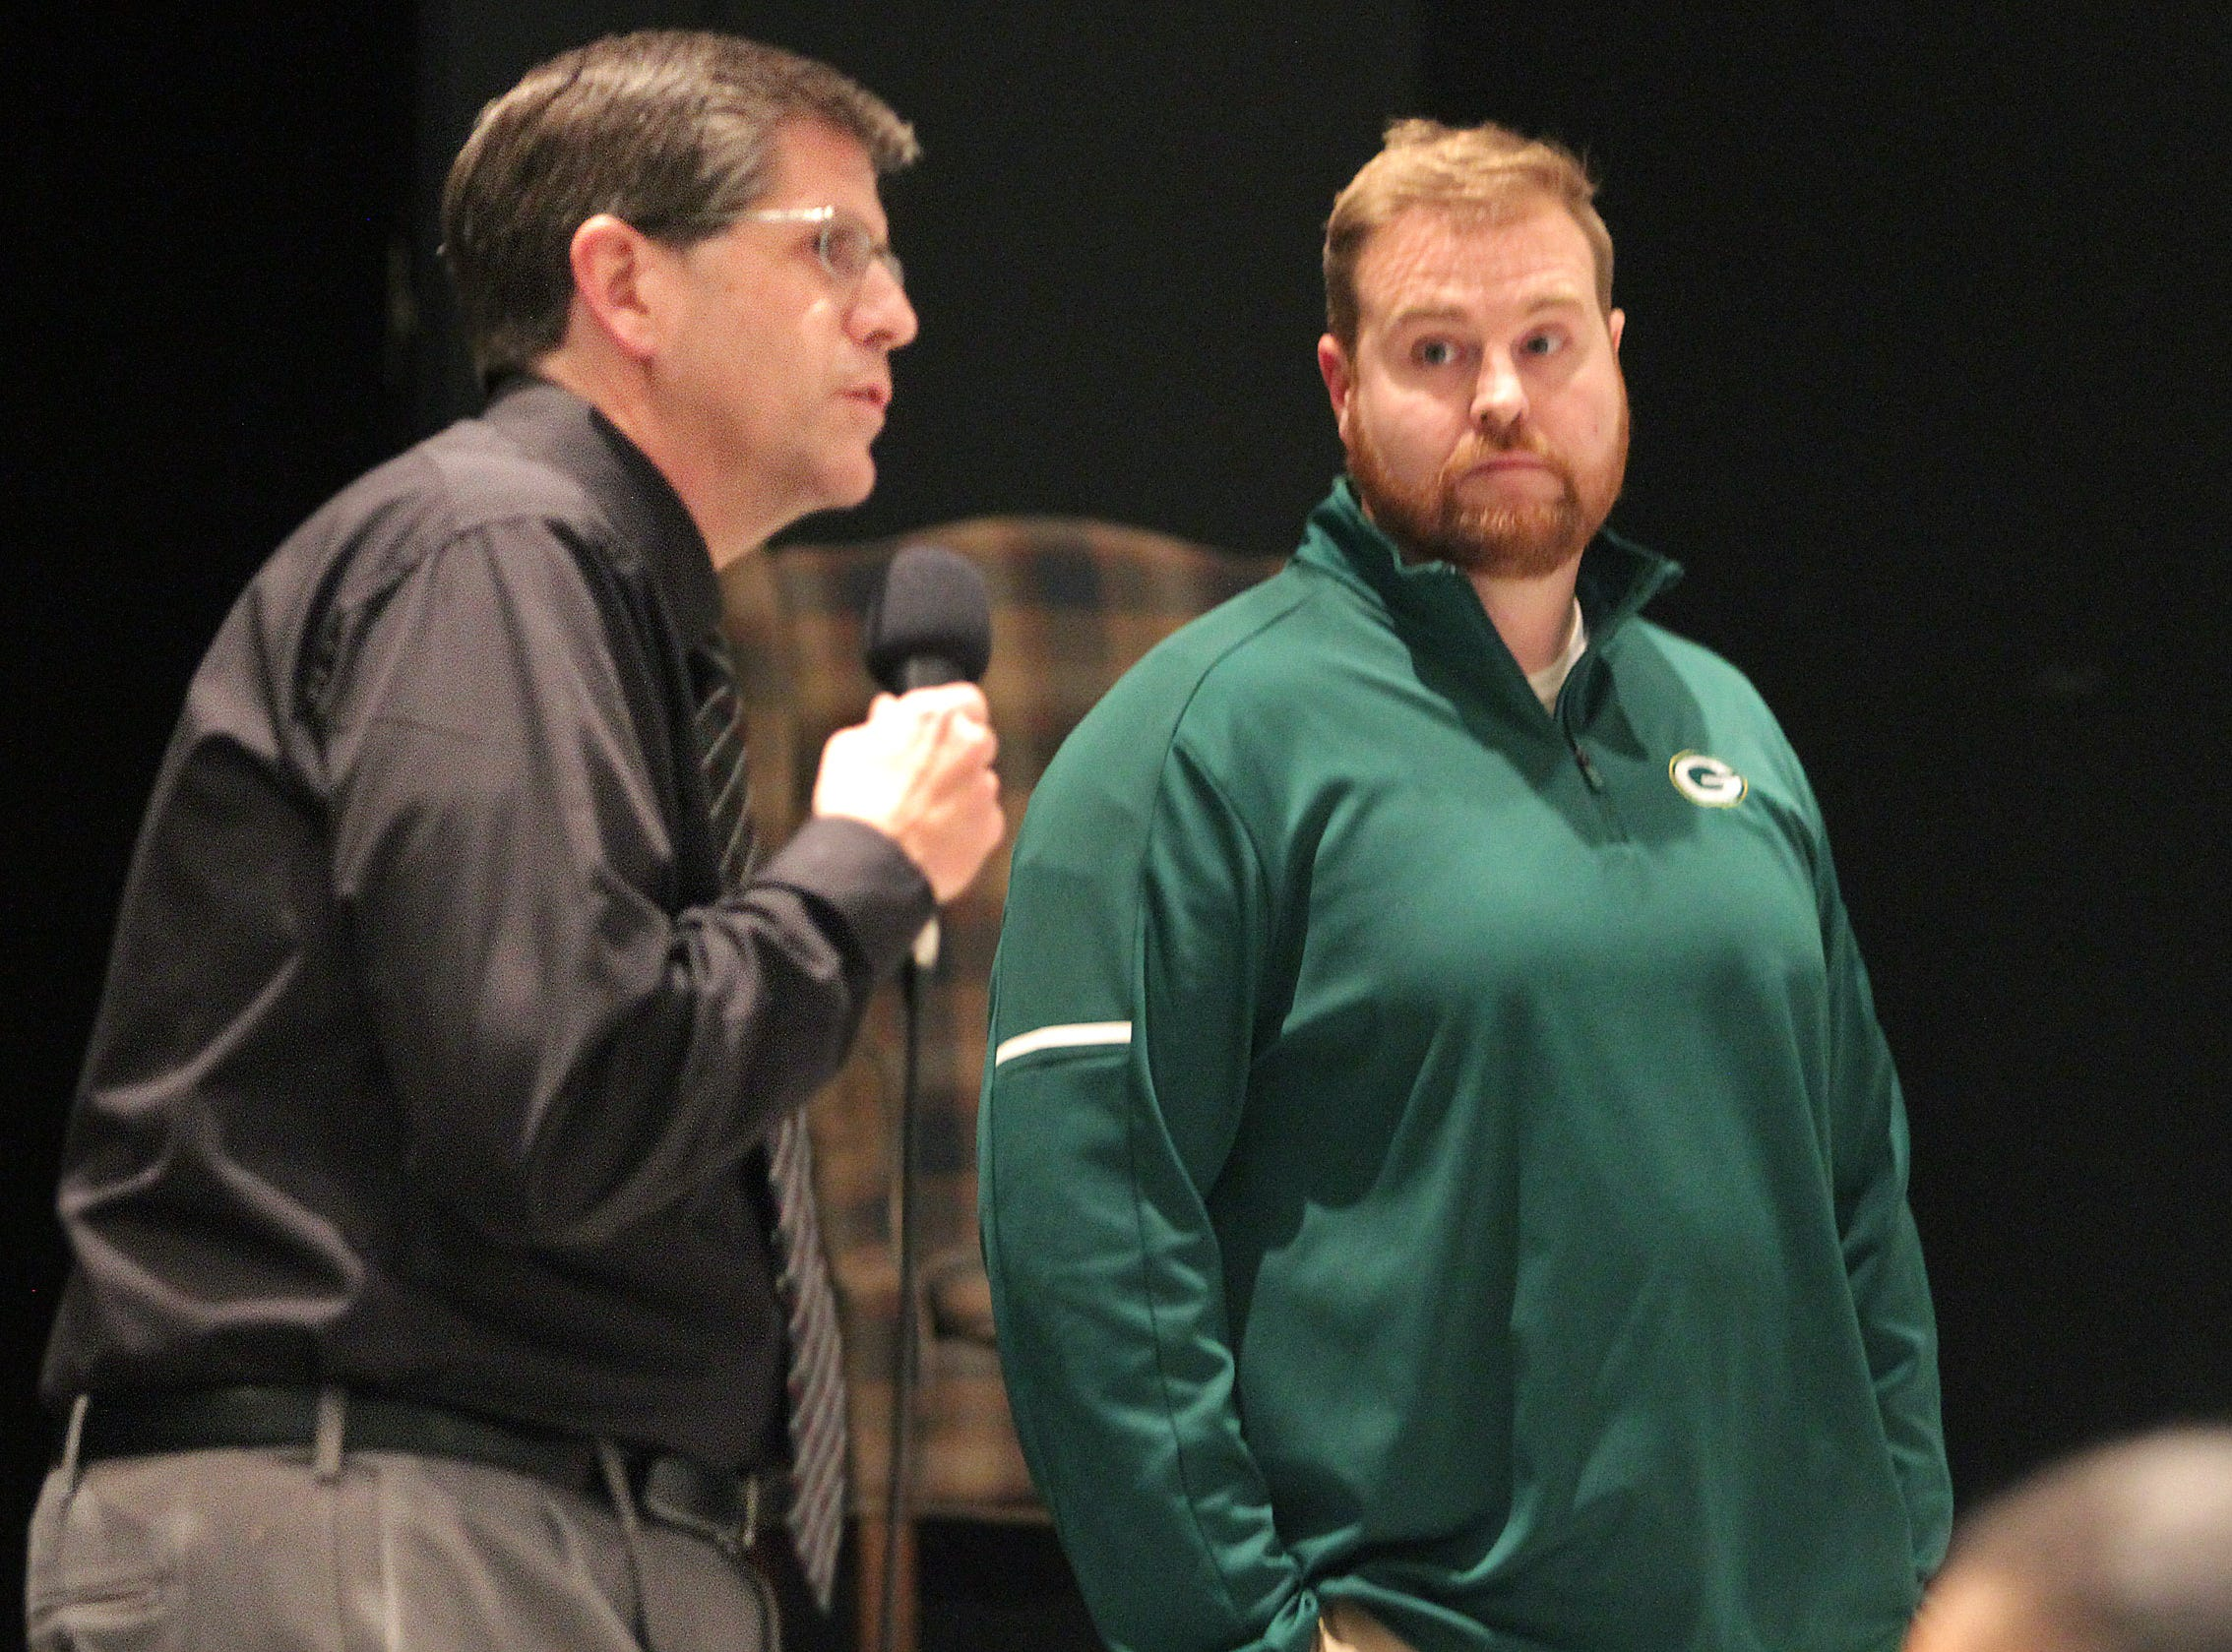 L-R Gallatin High School Principal Ron Becker introduces Chad Watson as the new football coach at a meeting in Gallatin, TN on Tuesday, January 9, 2019.